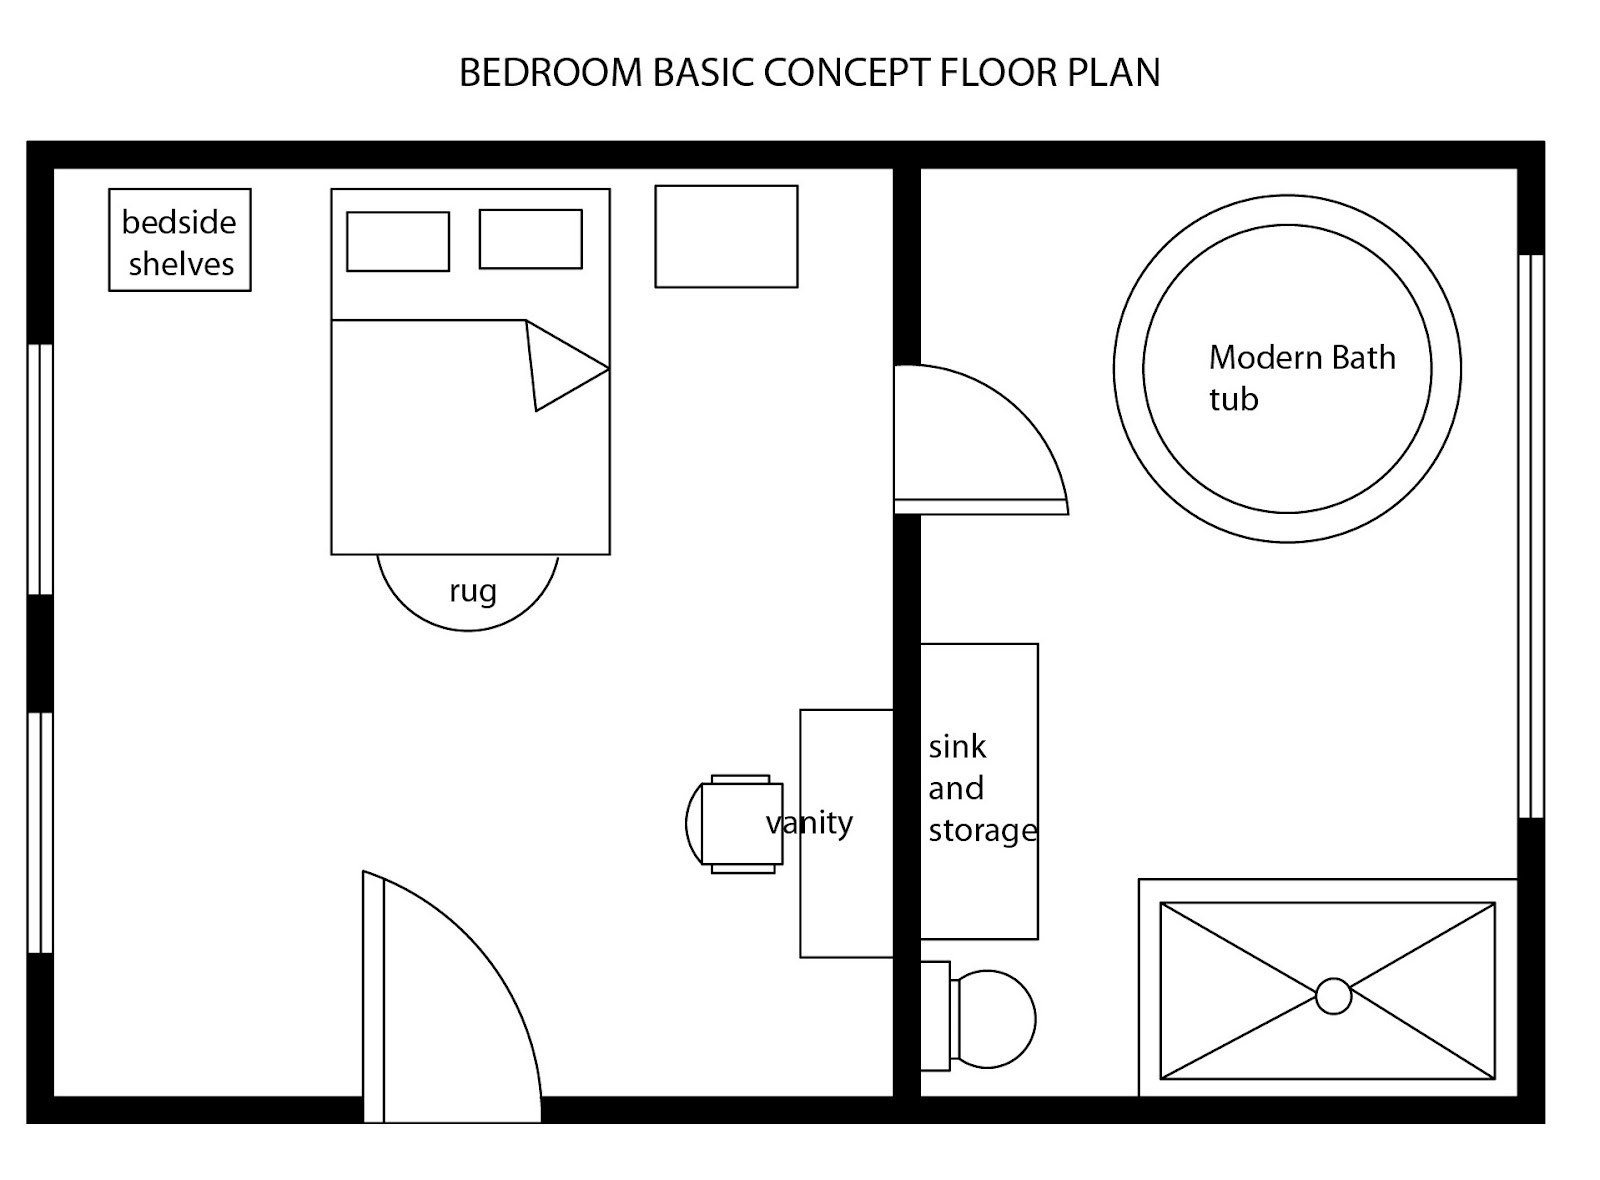 Interior design decor modern bedroom basic floor plan for Simple floor plan drawing